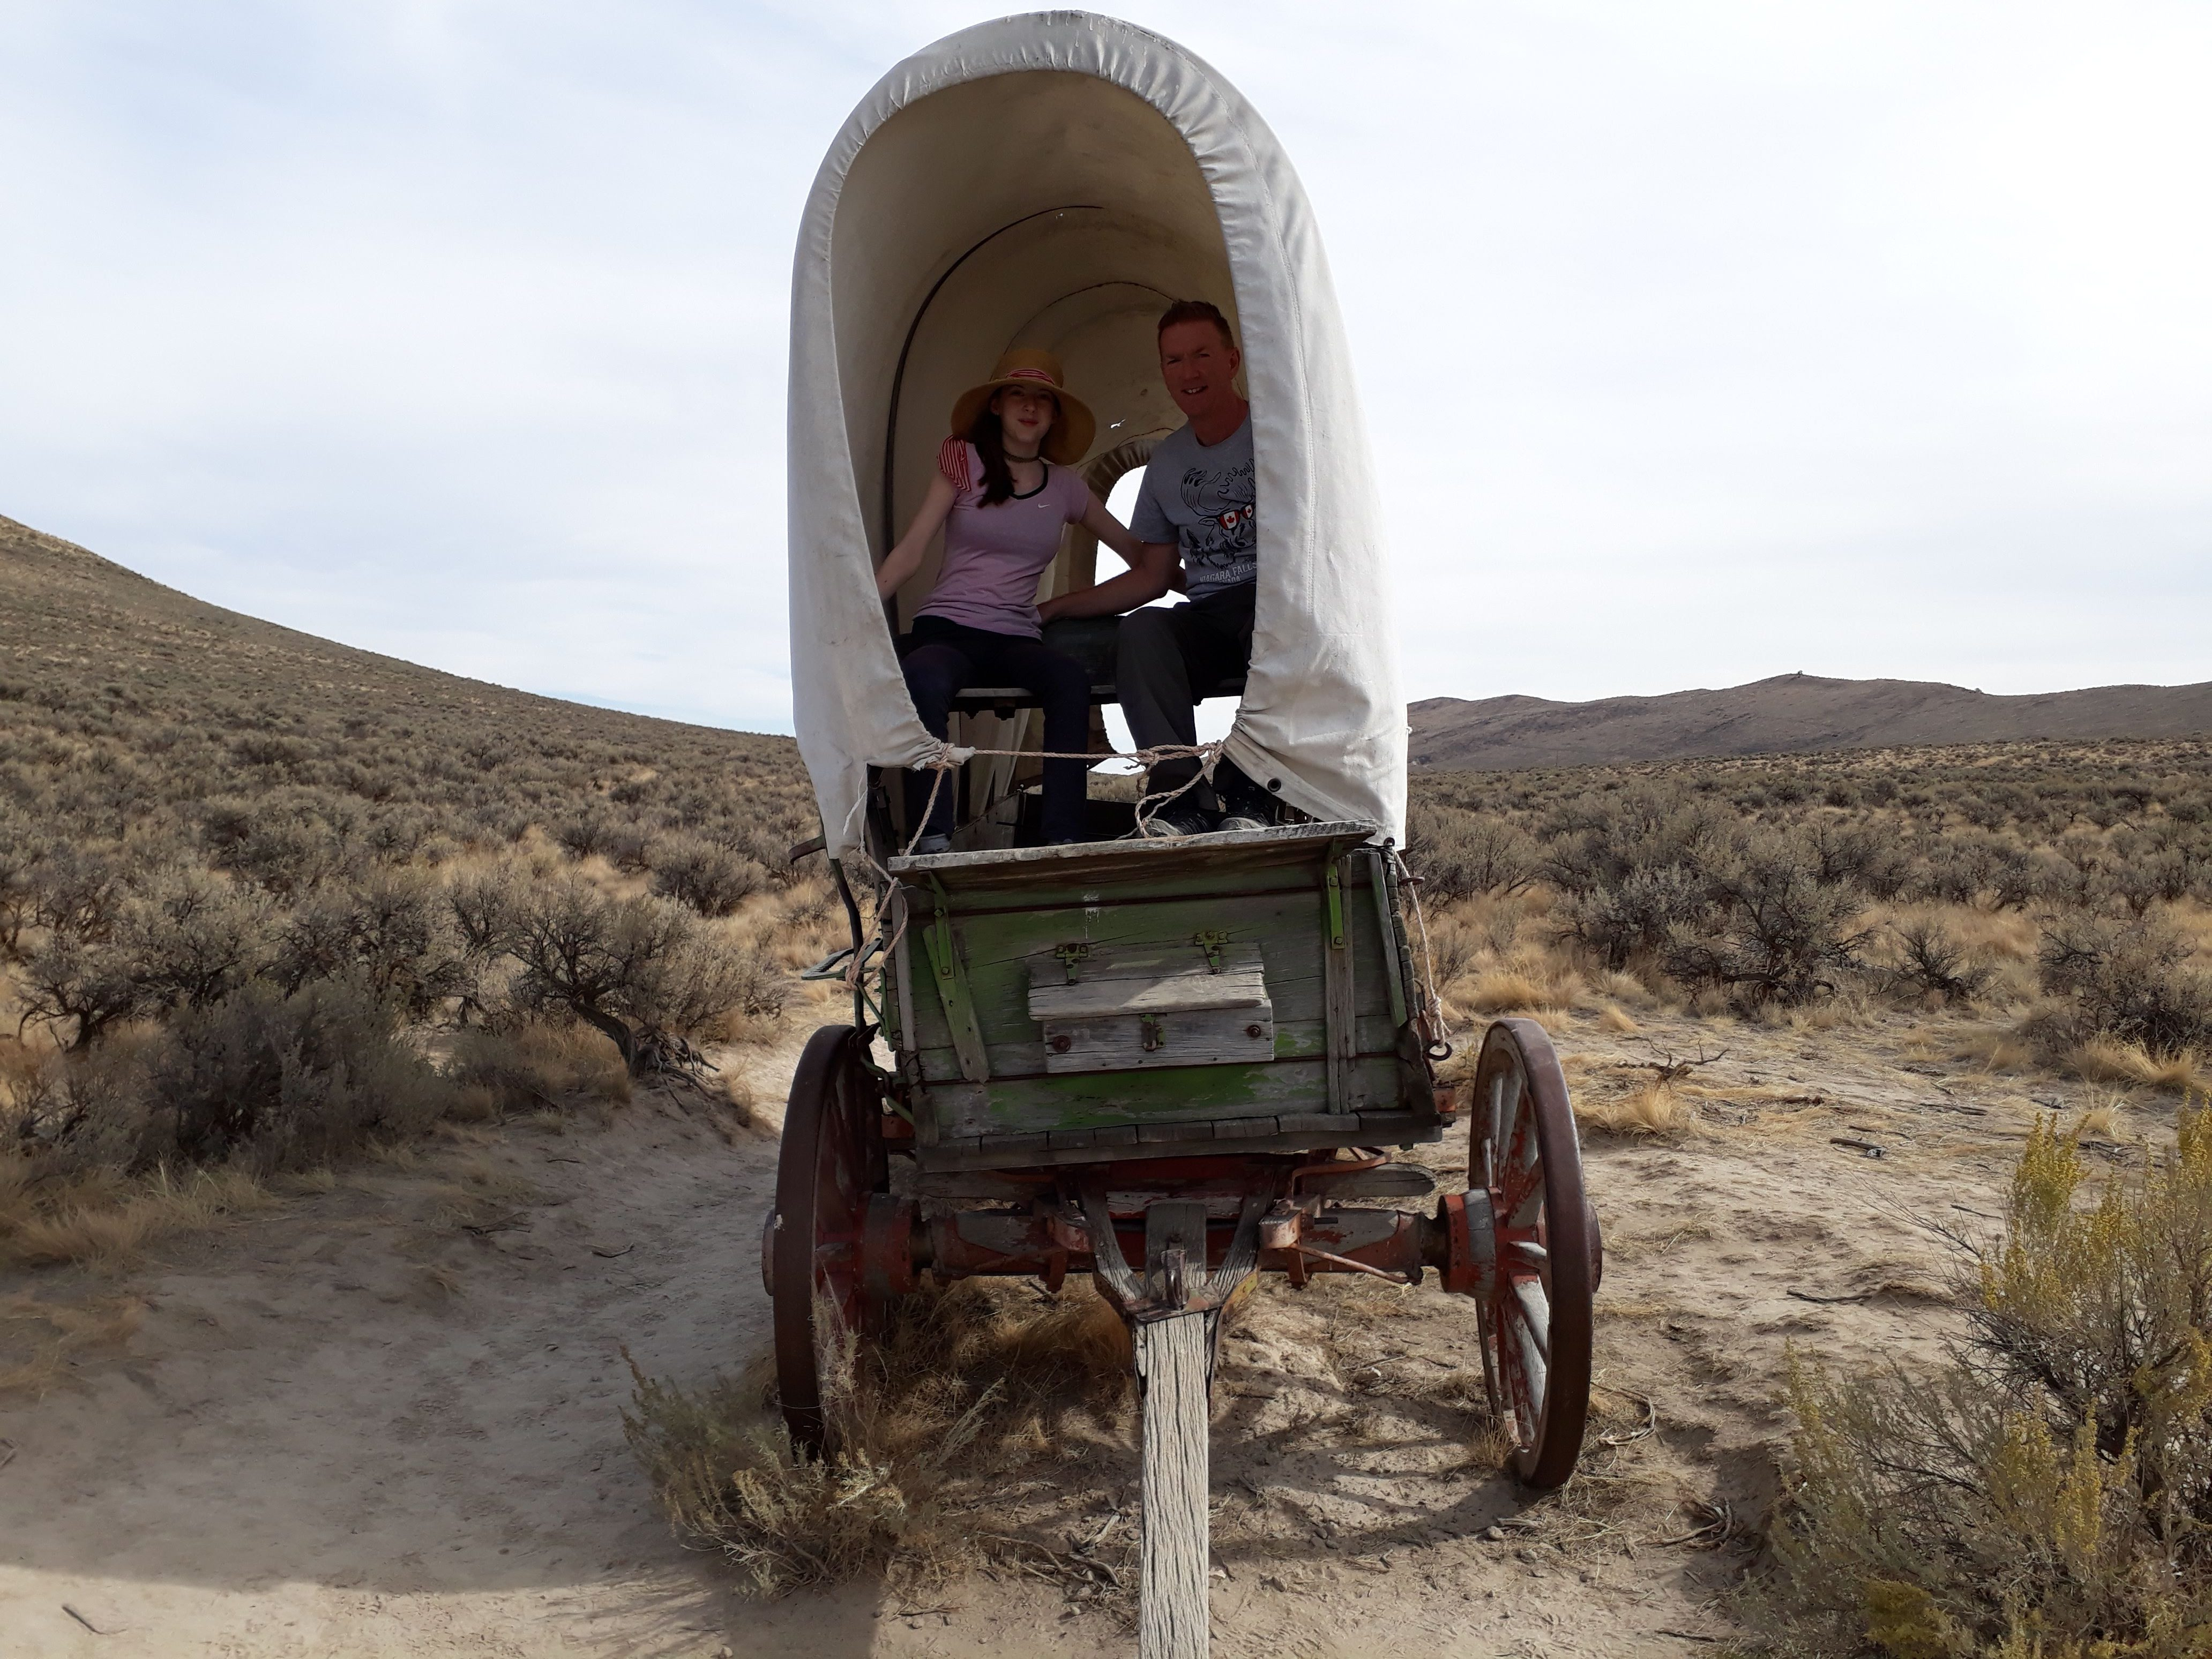 Oregon Trail Interpretive Center - The Trail